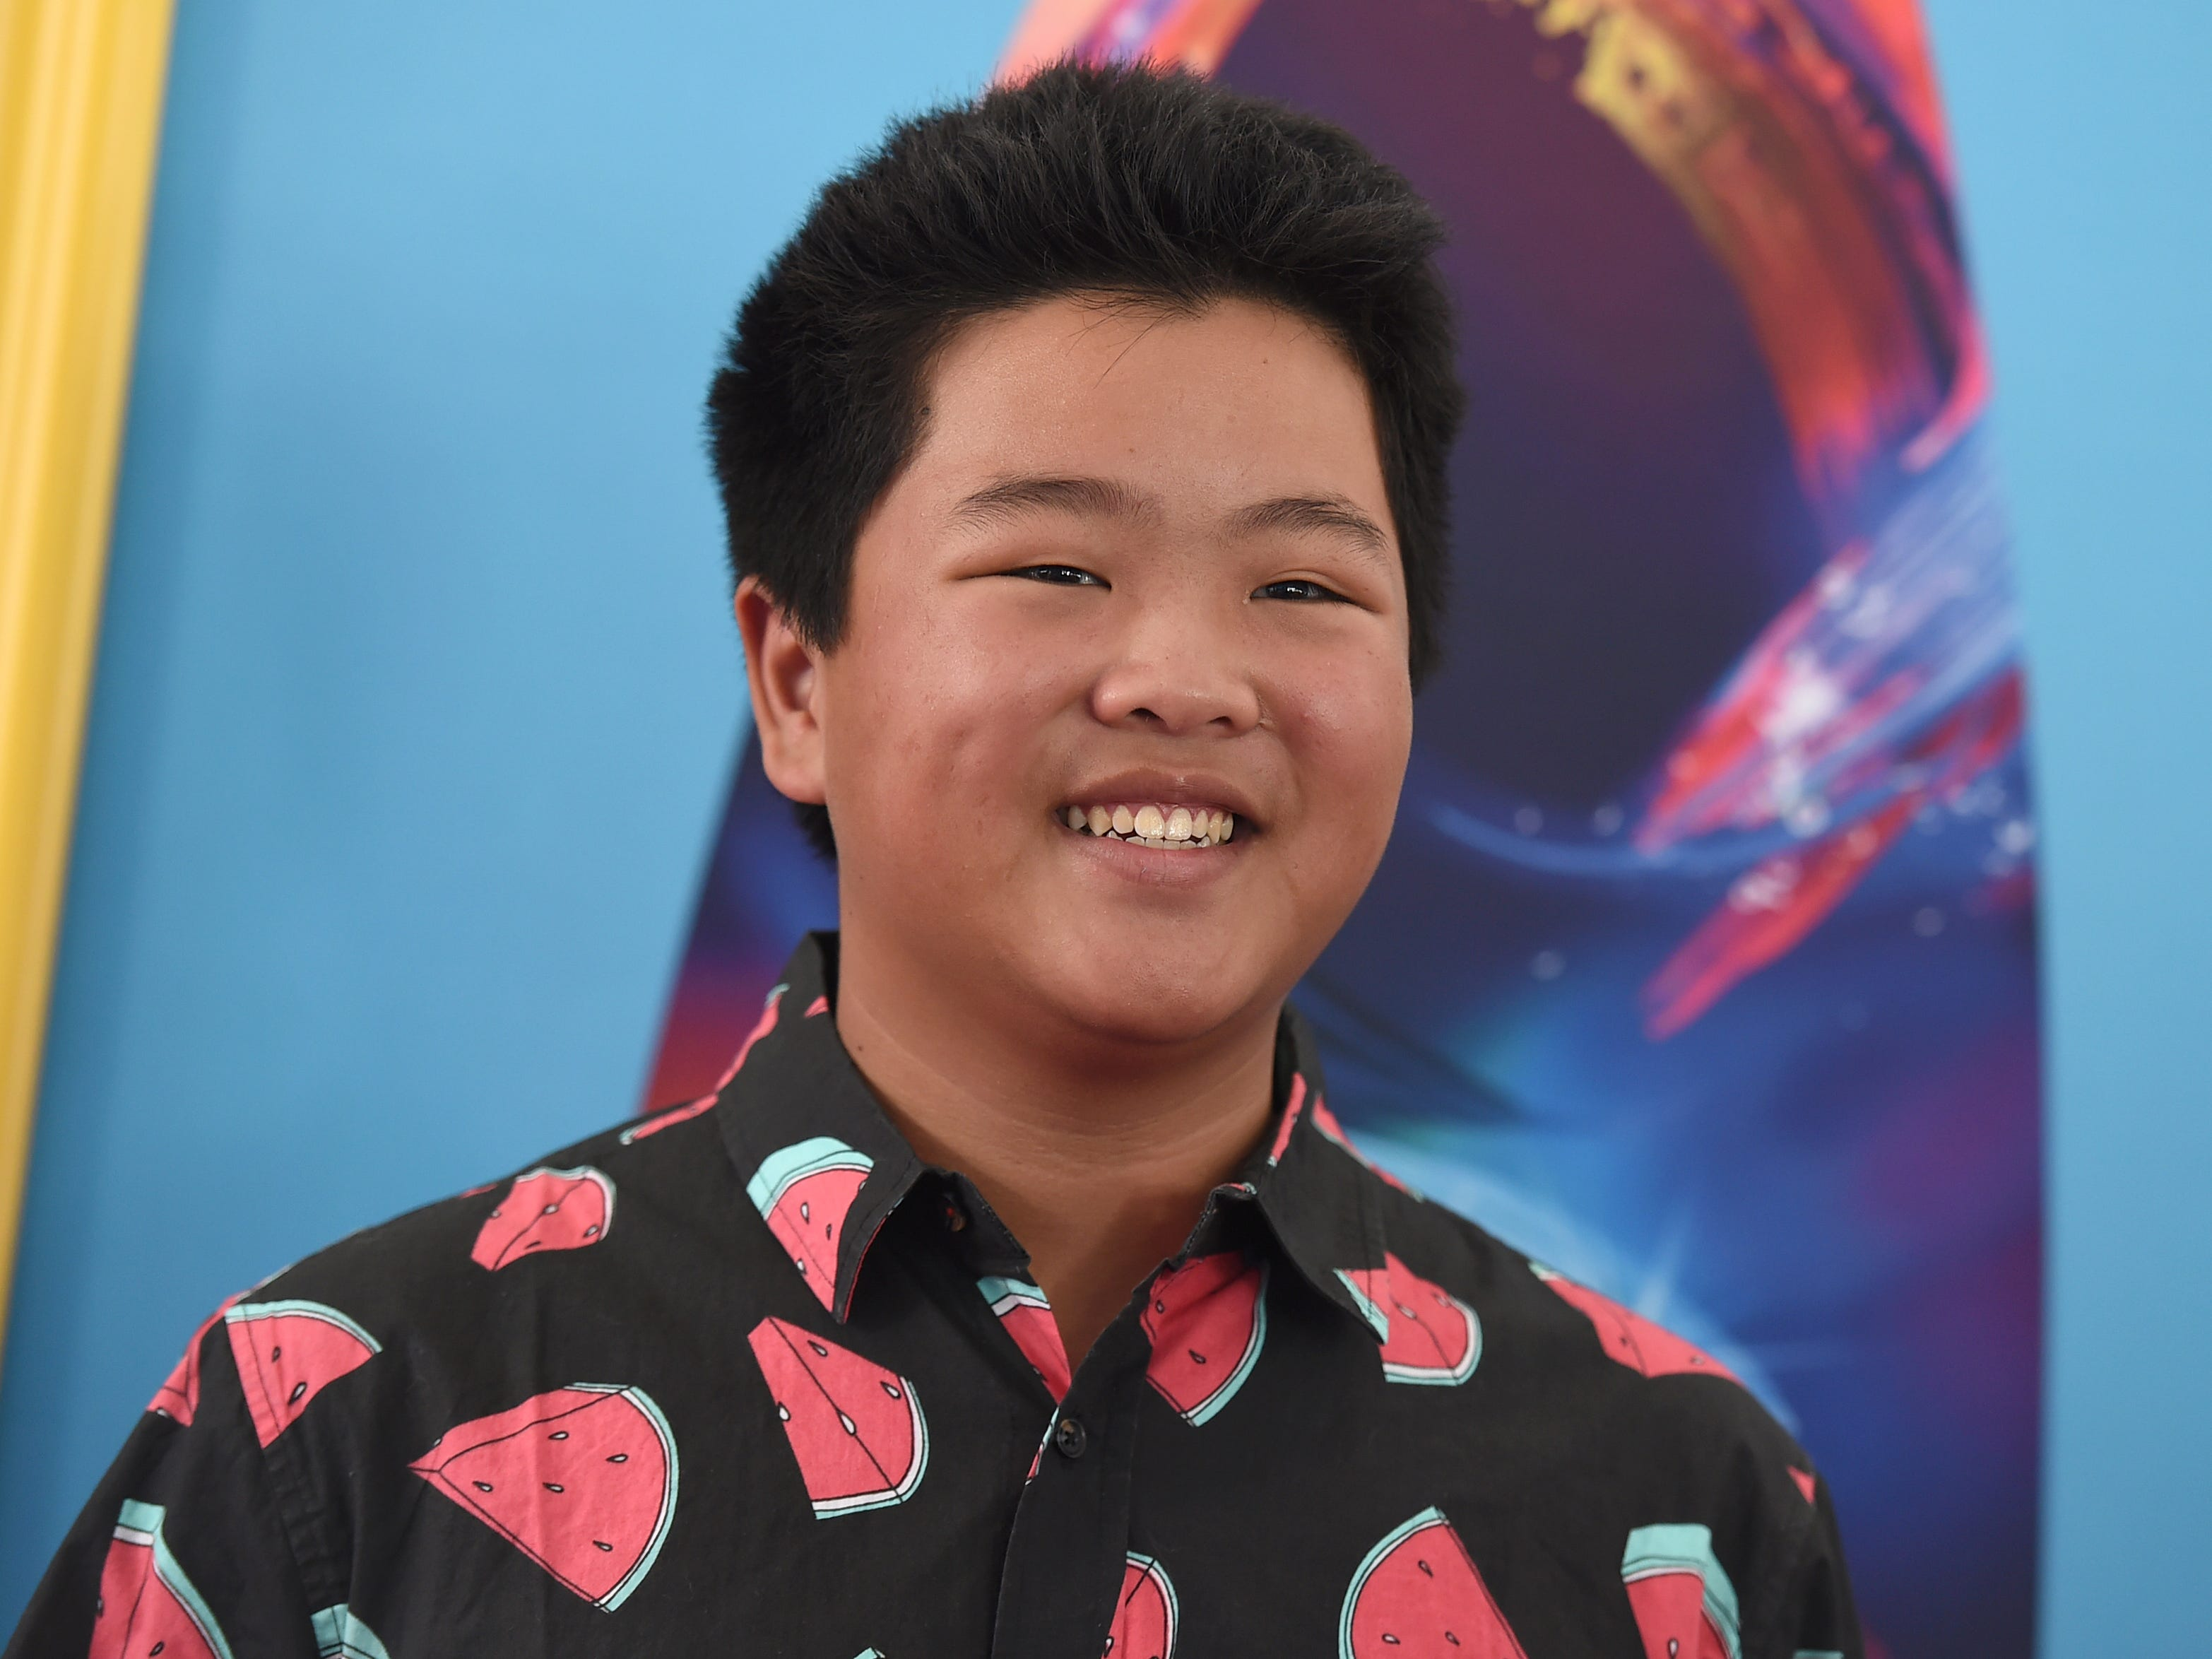 Hudson Yang arrives at the Teen Choice Awards at The Forum on Sunday, Aug. 12, 2018, in Inglewood, Calif. (Photo by Jordan Strauss/Invision/AP) ORG XMIT: CAPM124